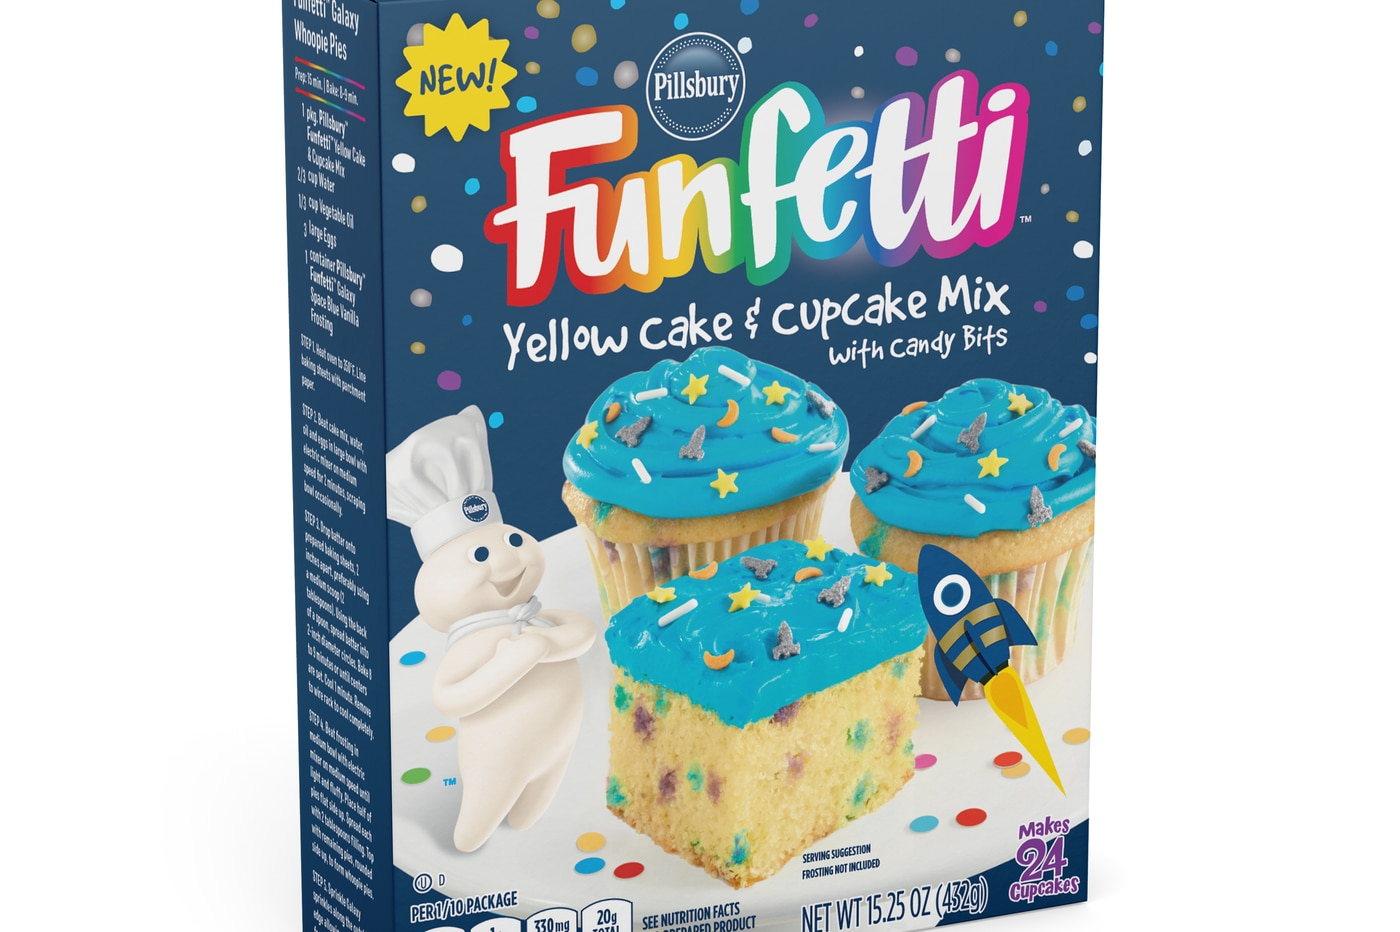 You can now buy Pillsbury Funfetti cake in unicorn and space-themed shapes